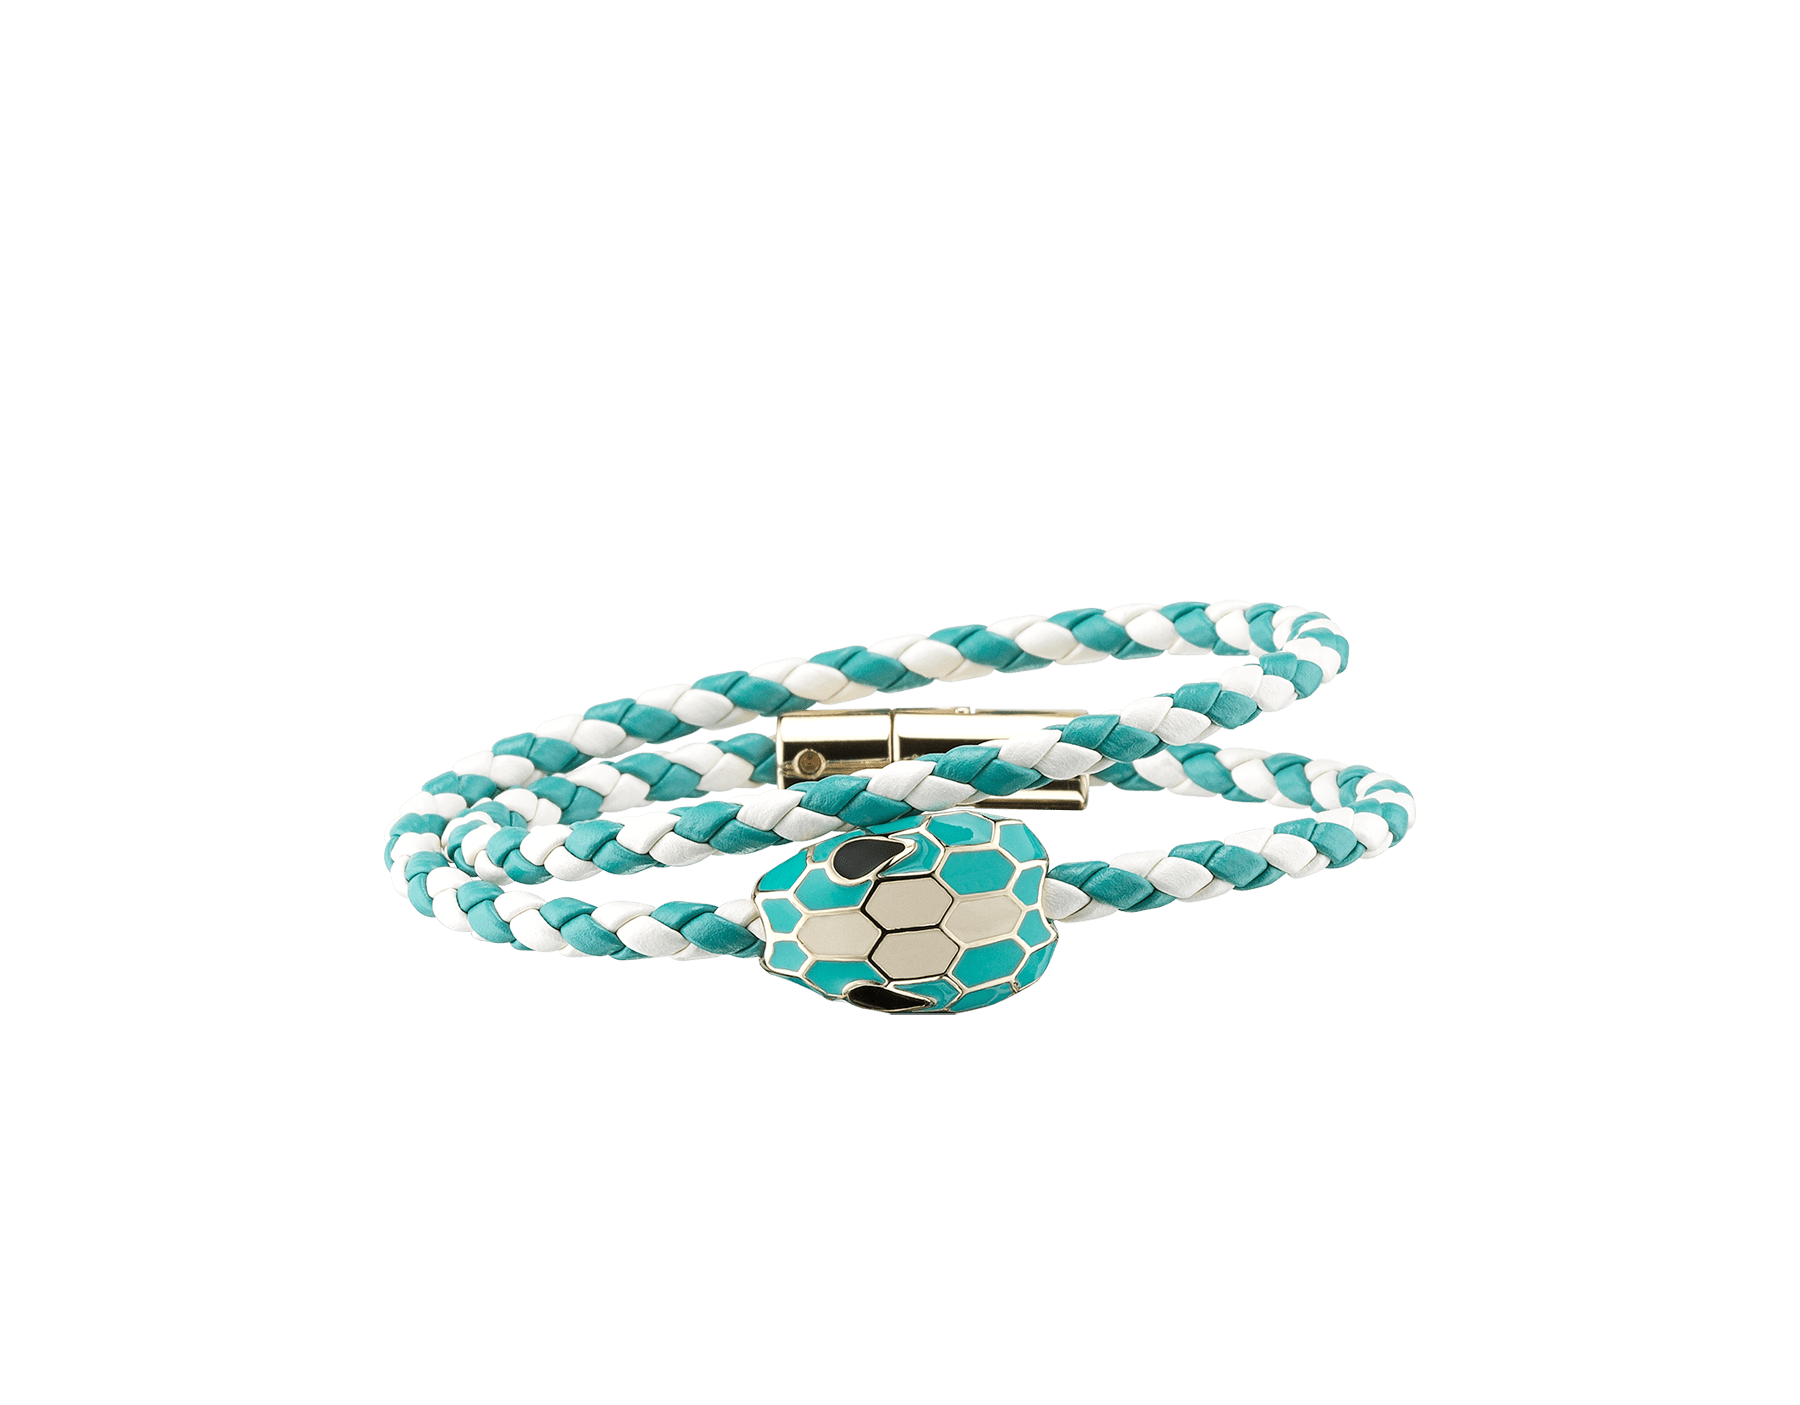 Serpenti Forever multi-coiled braid bracelet inwhite agate and arctic jade woven calf leather, with the iconic snakehead décor in arctic jade and white agate enamel. SerpDoubleBraid-WCL-WAAJ image 1